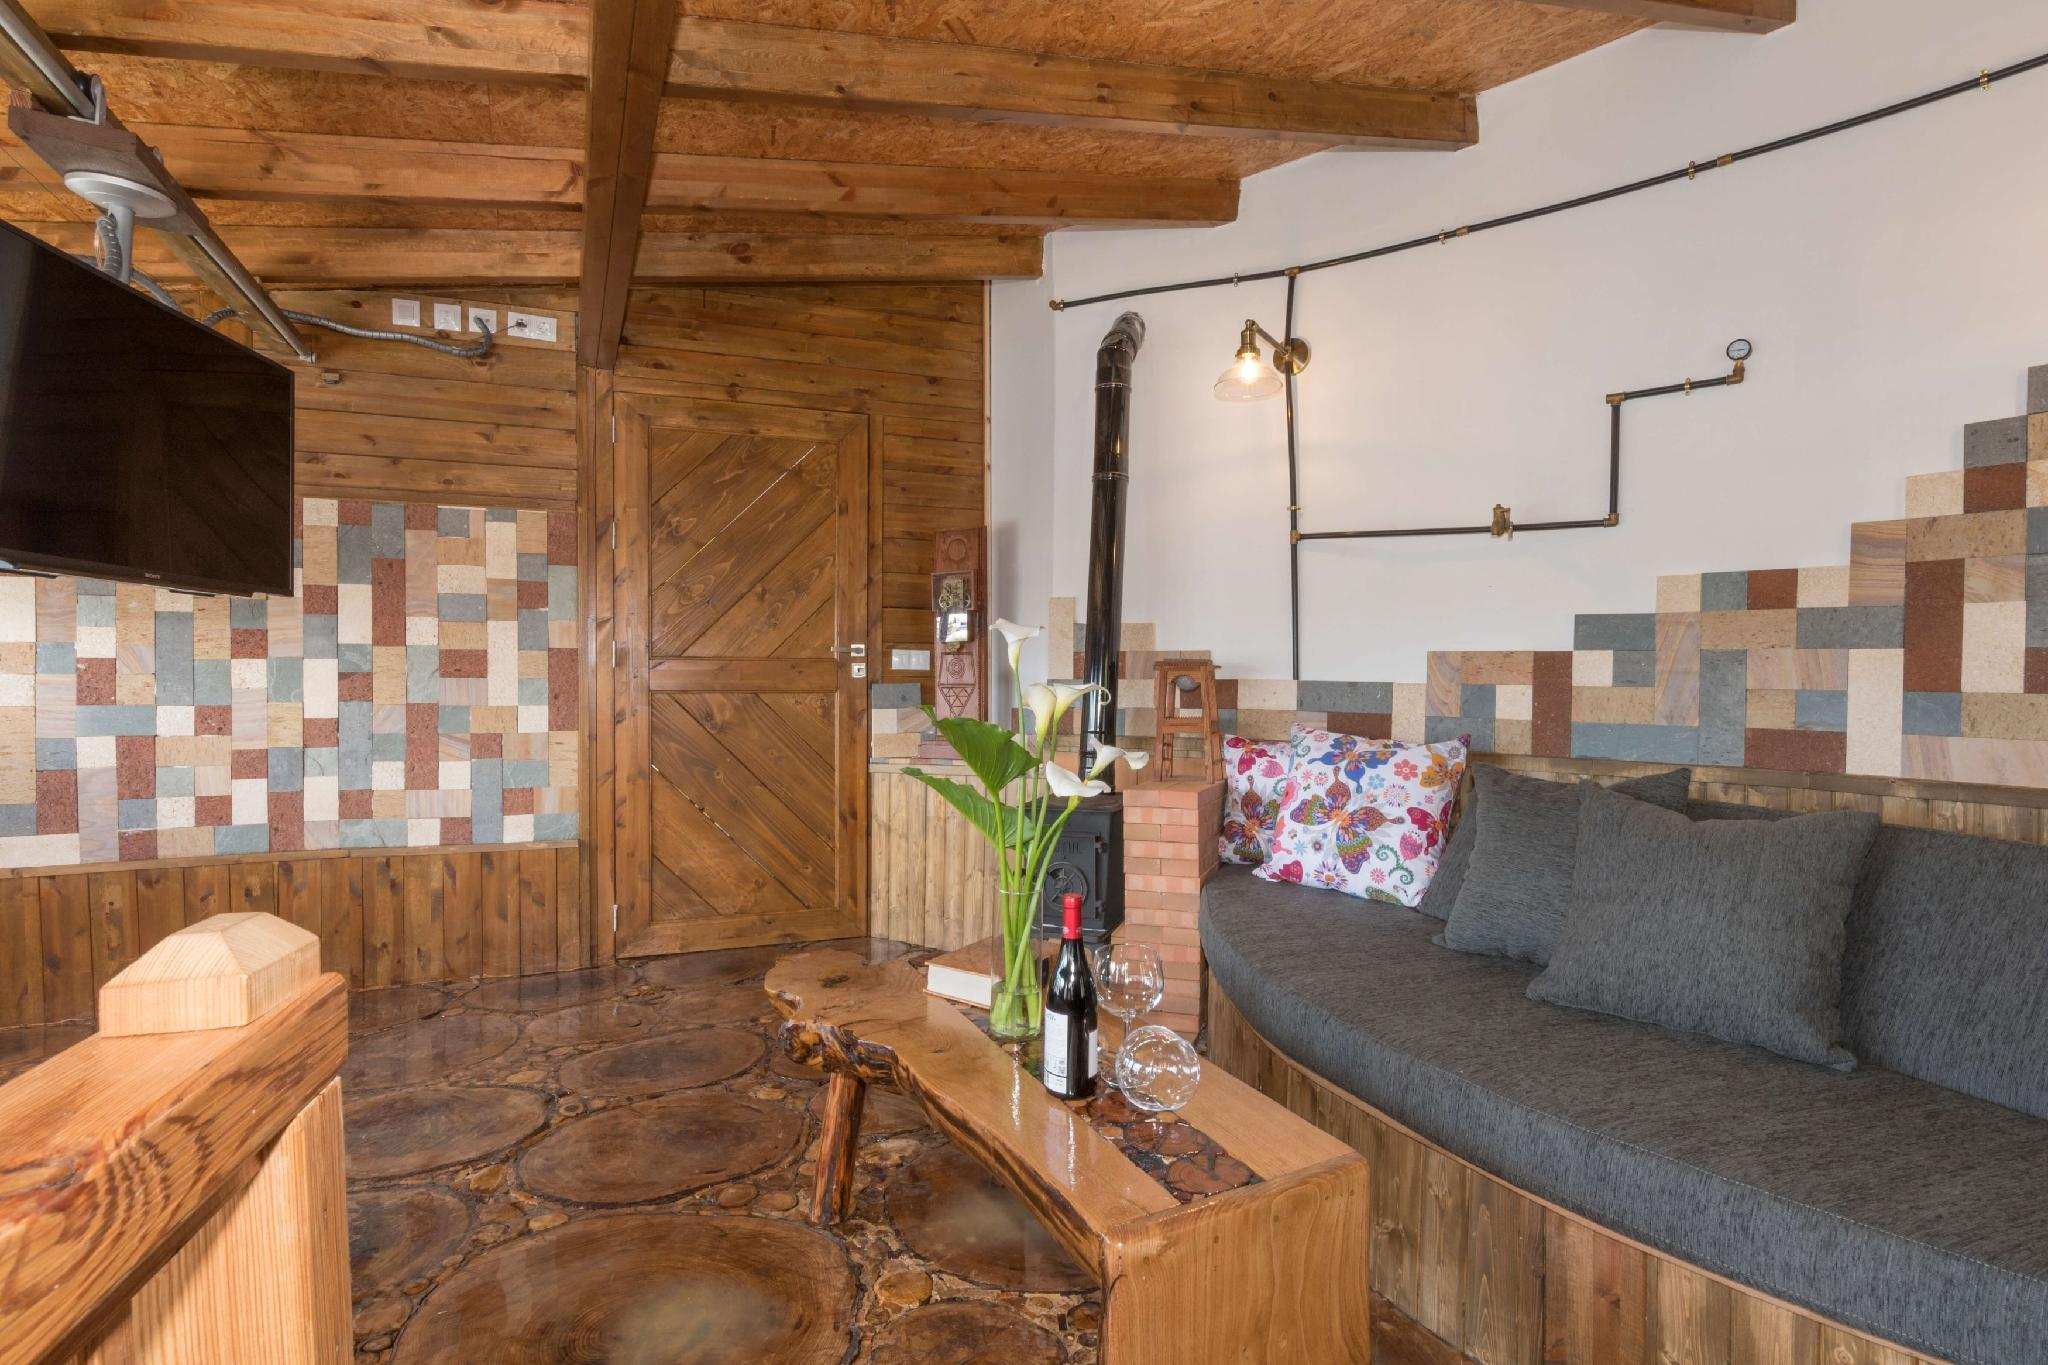 106804 - House in Valleseco